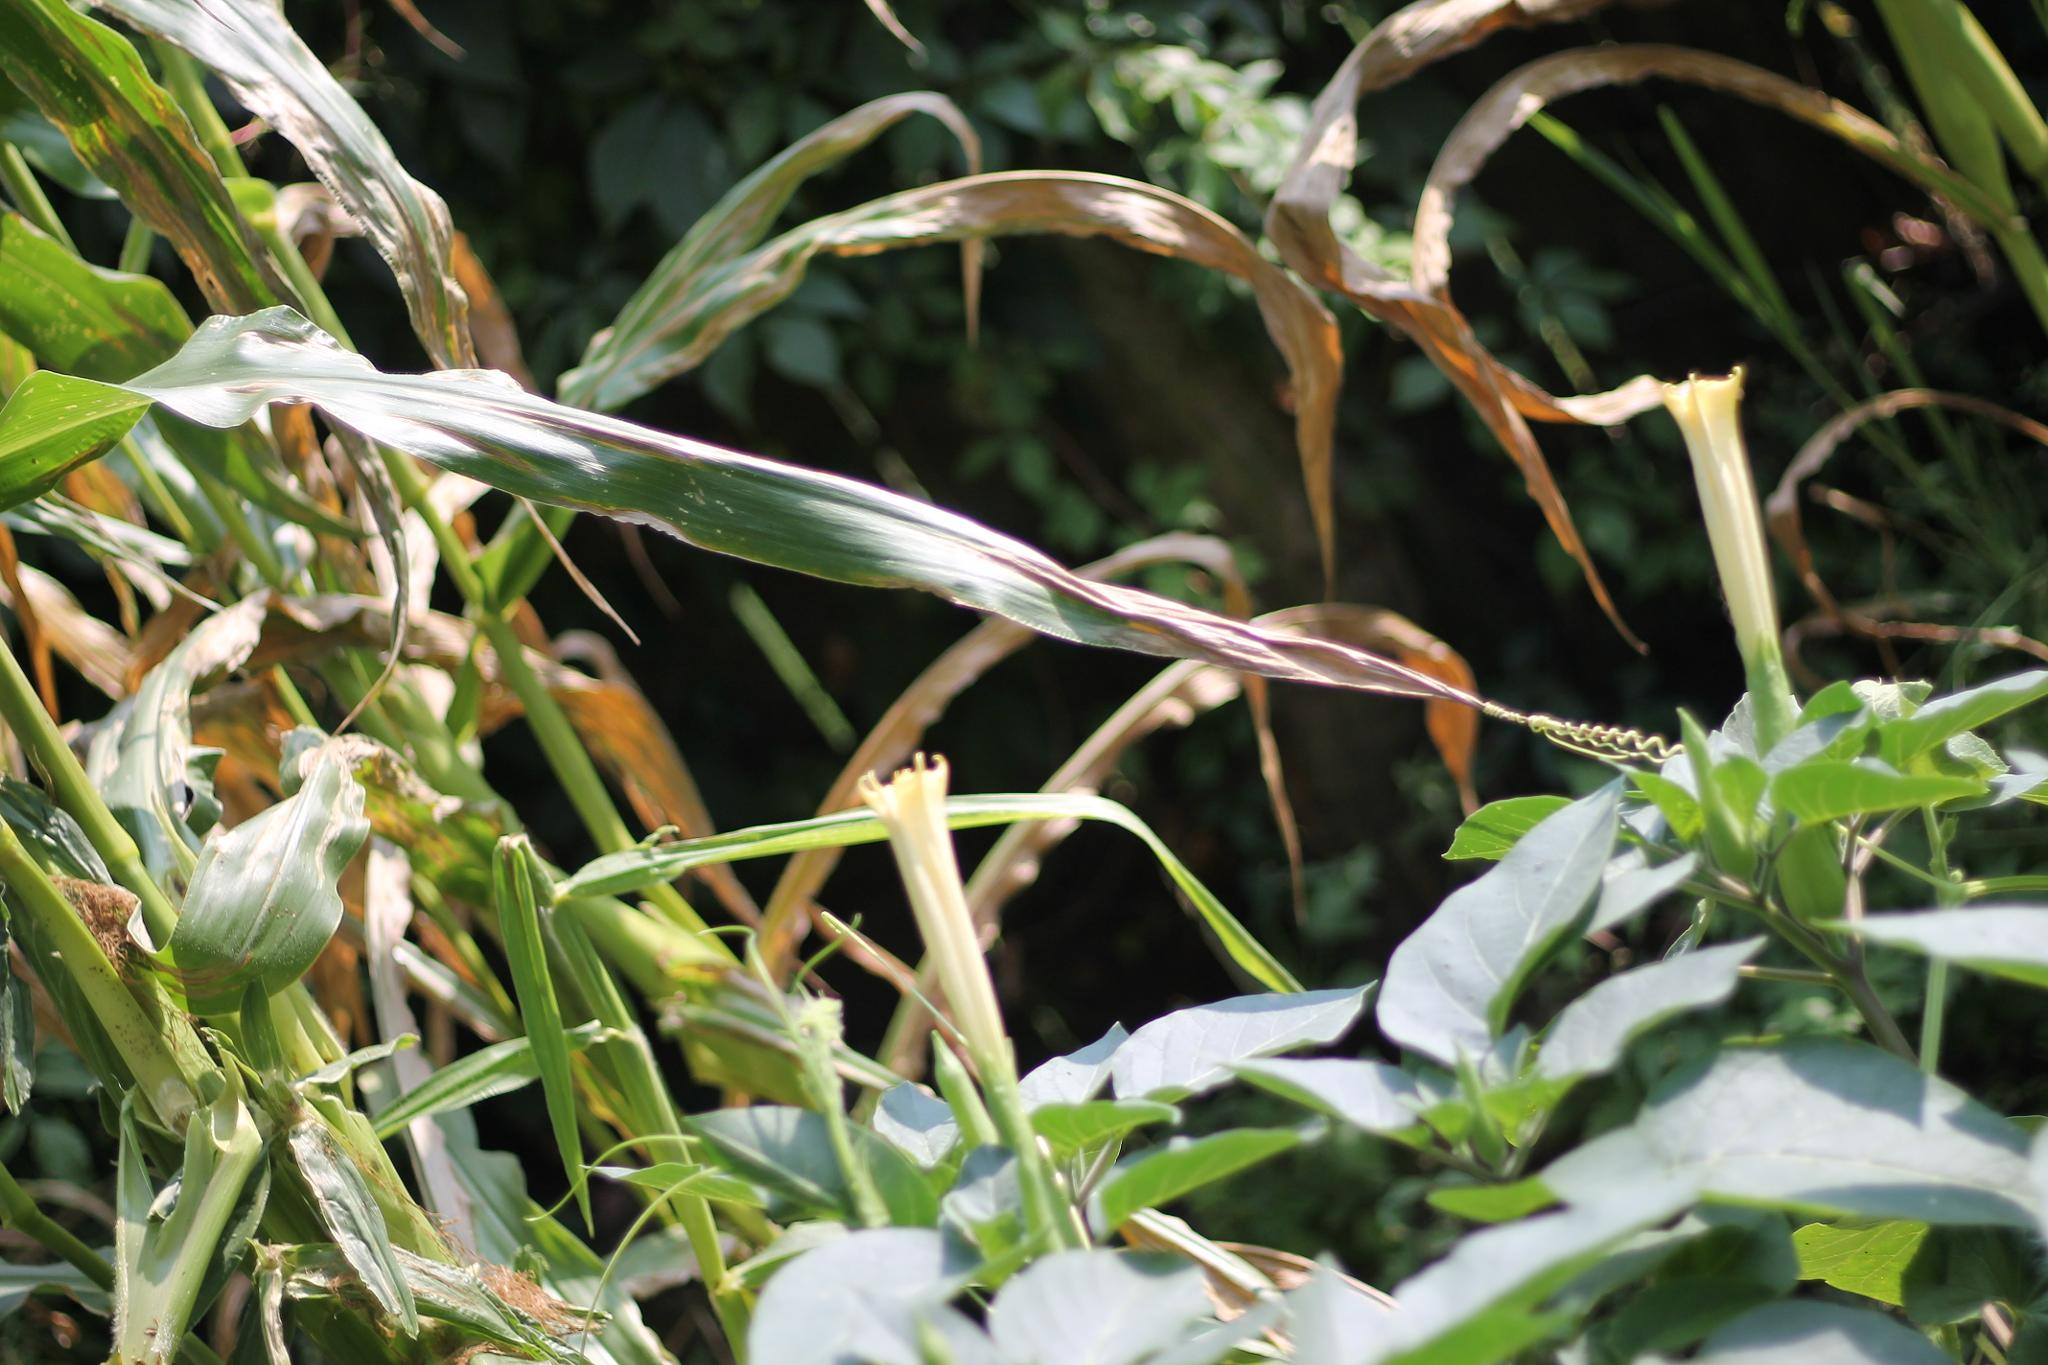 gourd vine shaking hands with corn stalk by Jim